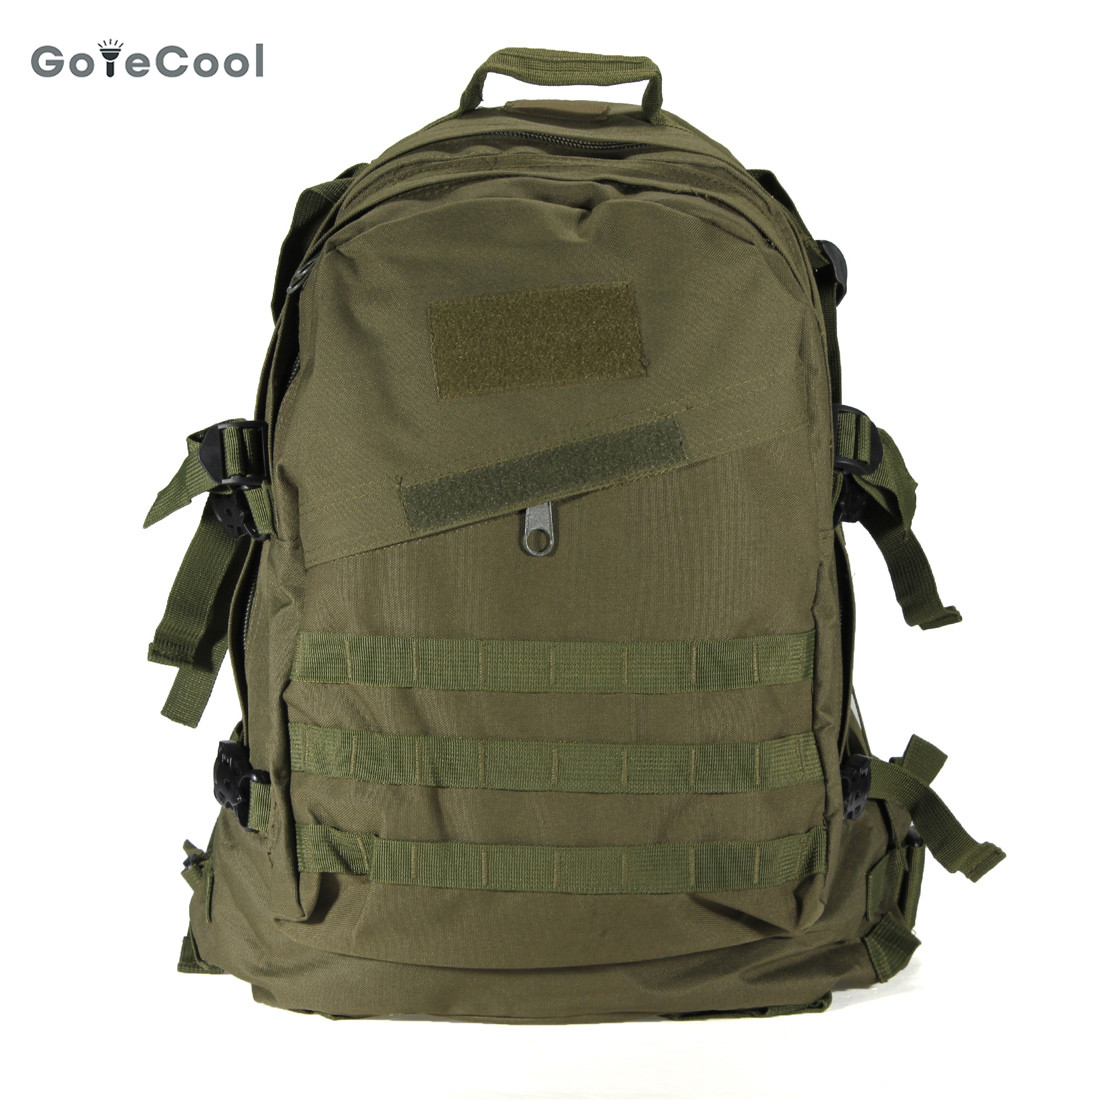 40L 3D Outdoor Sport nylon Military Tactical Backpack Rucksack travel Bag Camping Hiking climbing bag цена